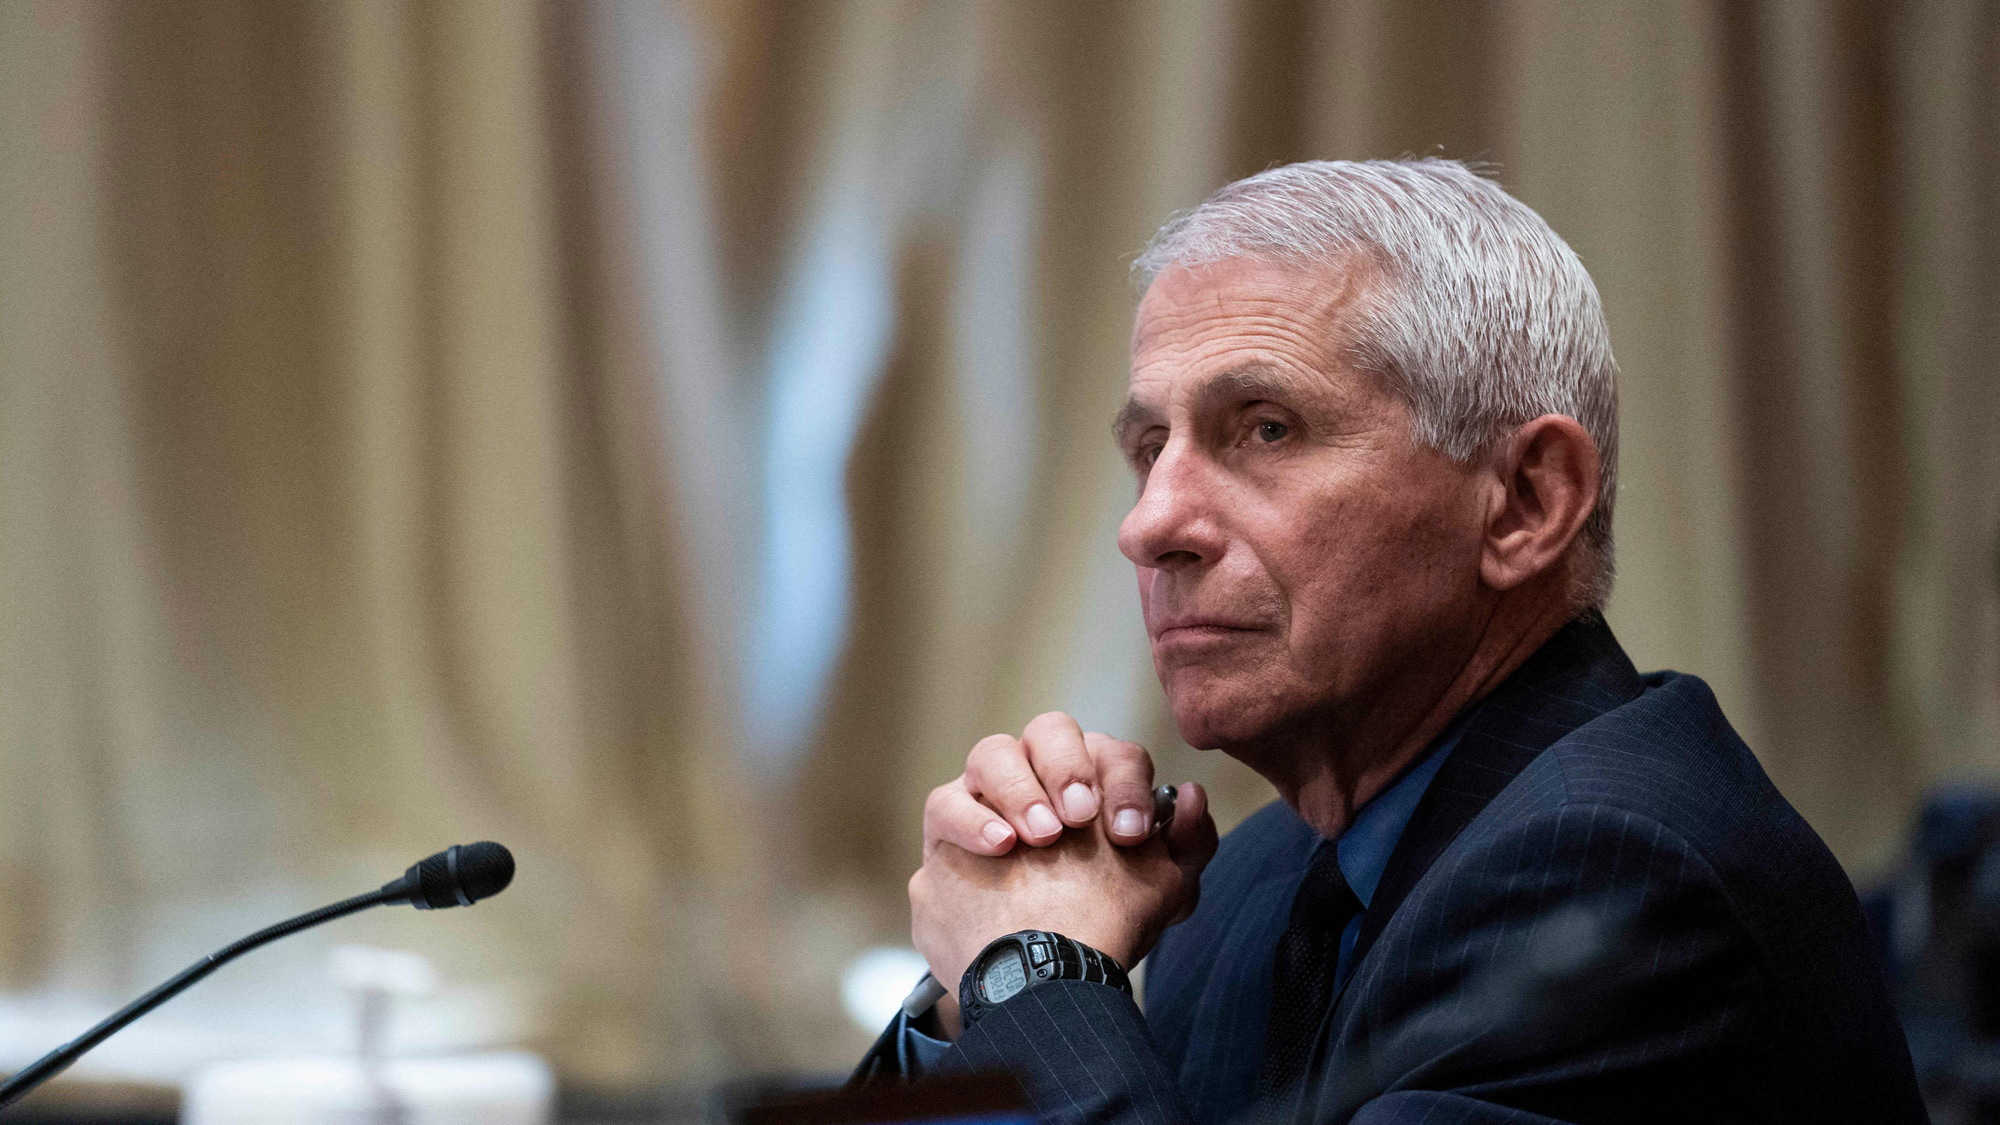 Dr. Anthony Fauci, director of the National Institute of Allergy and Infectious Diseases, listens during a hearing on Capitol Hill in Washington, DC, on May 26.